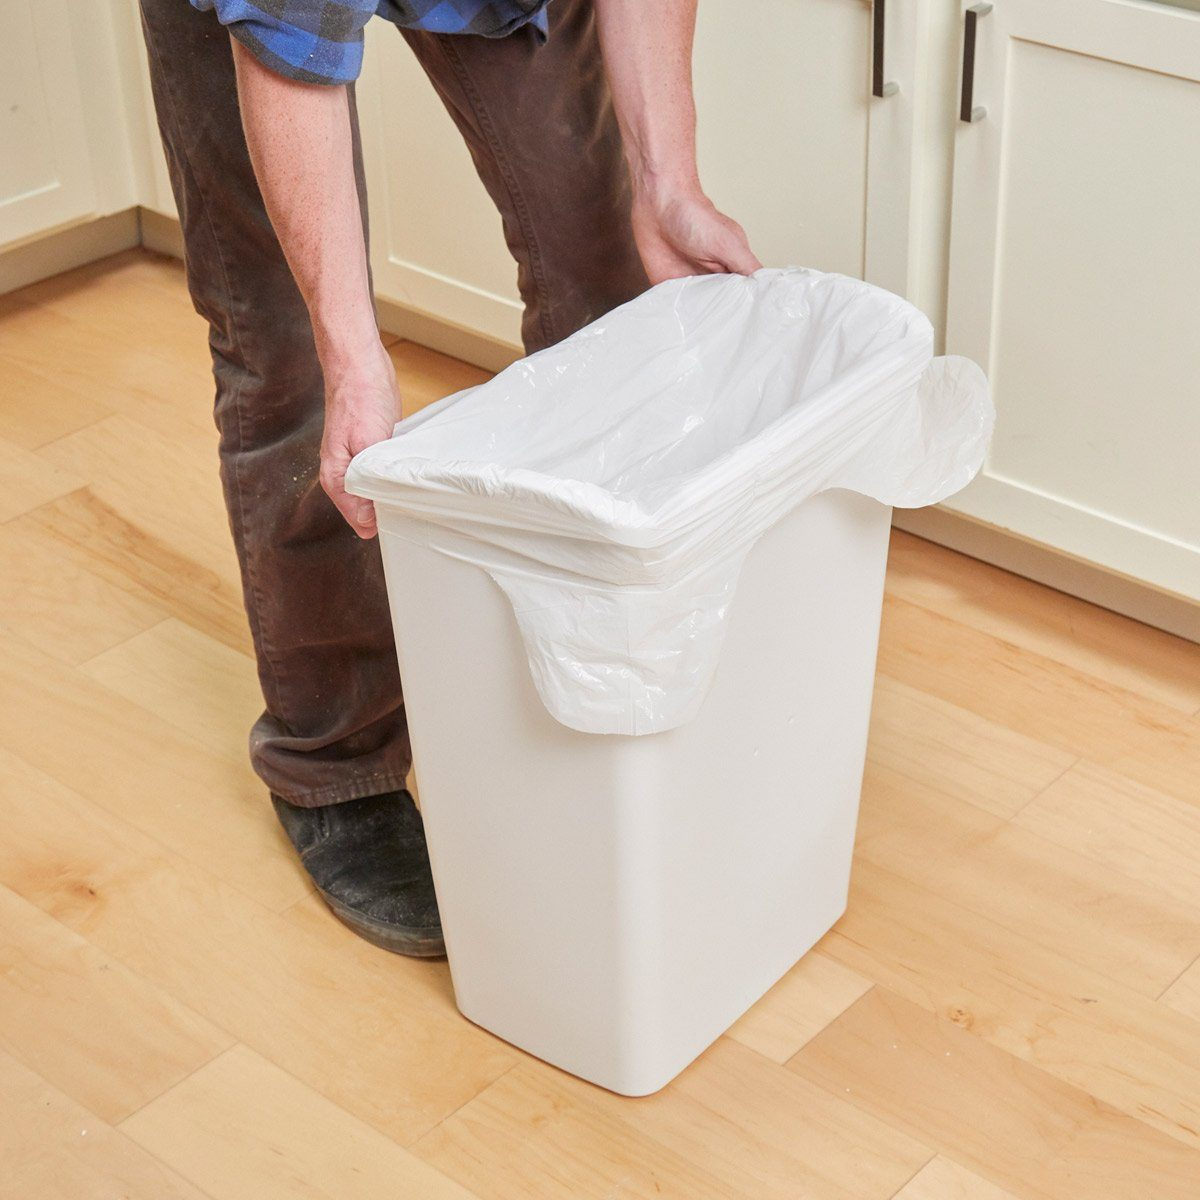 Drill holes in trash can - garbage bag in garbage can